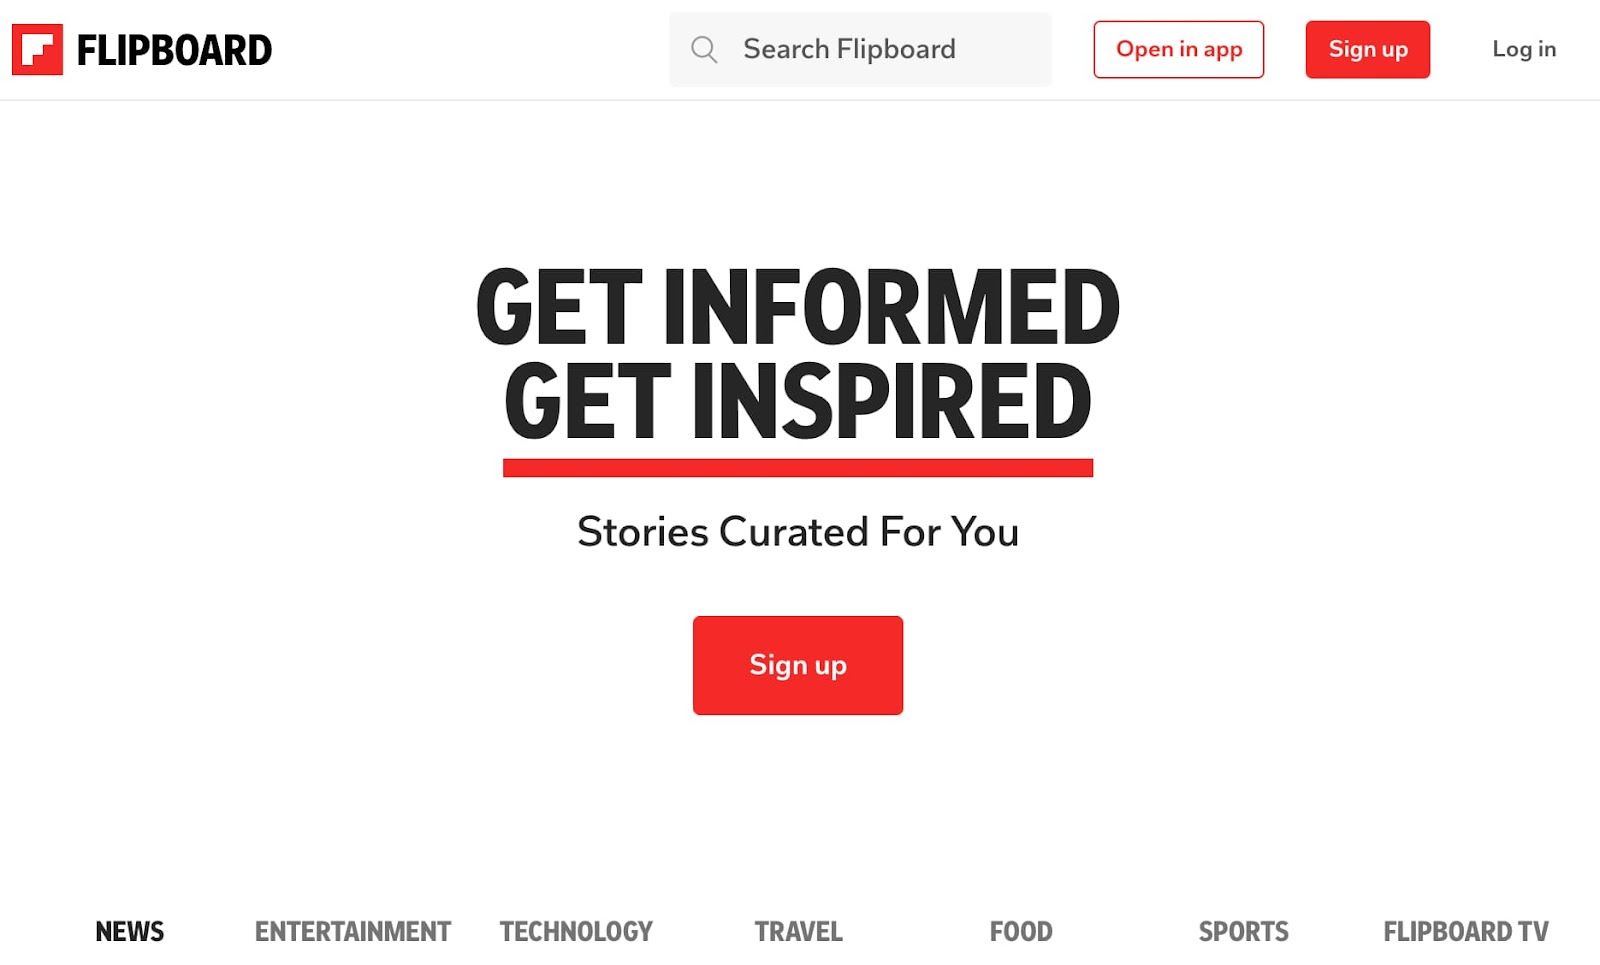 Content curation tool Flipboard